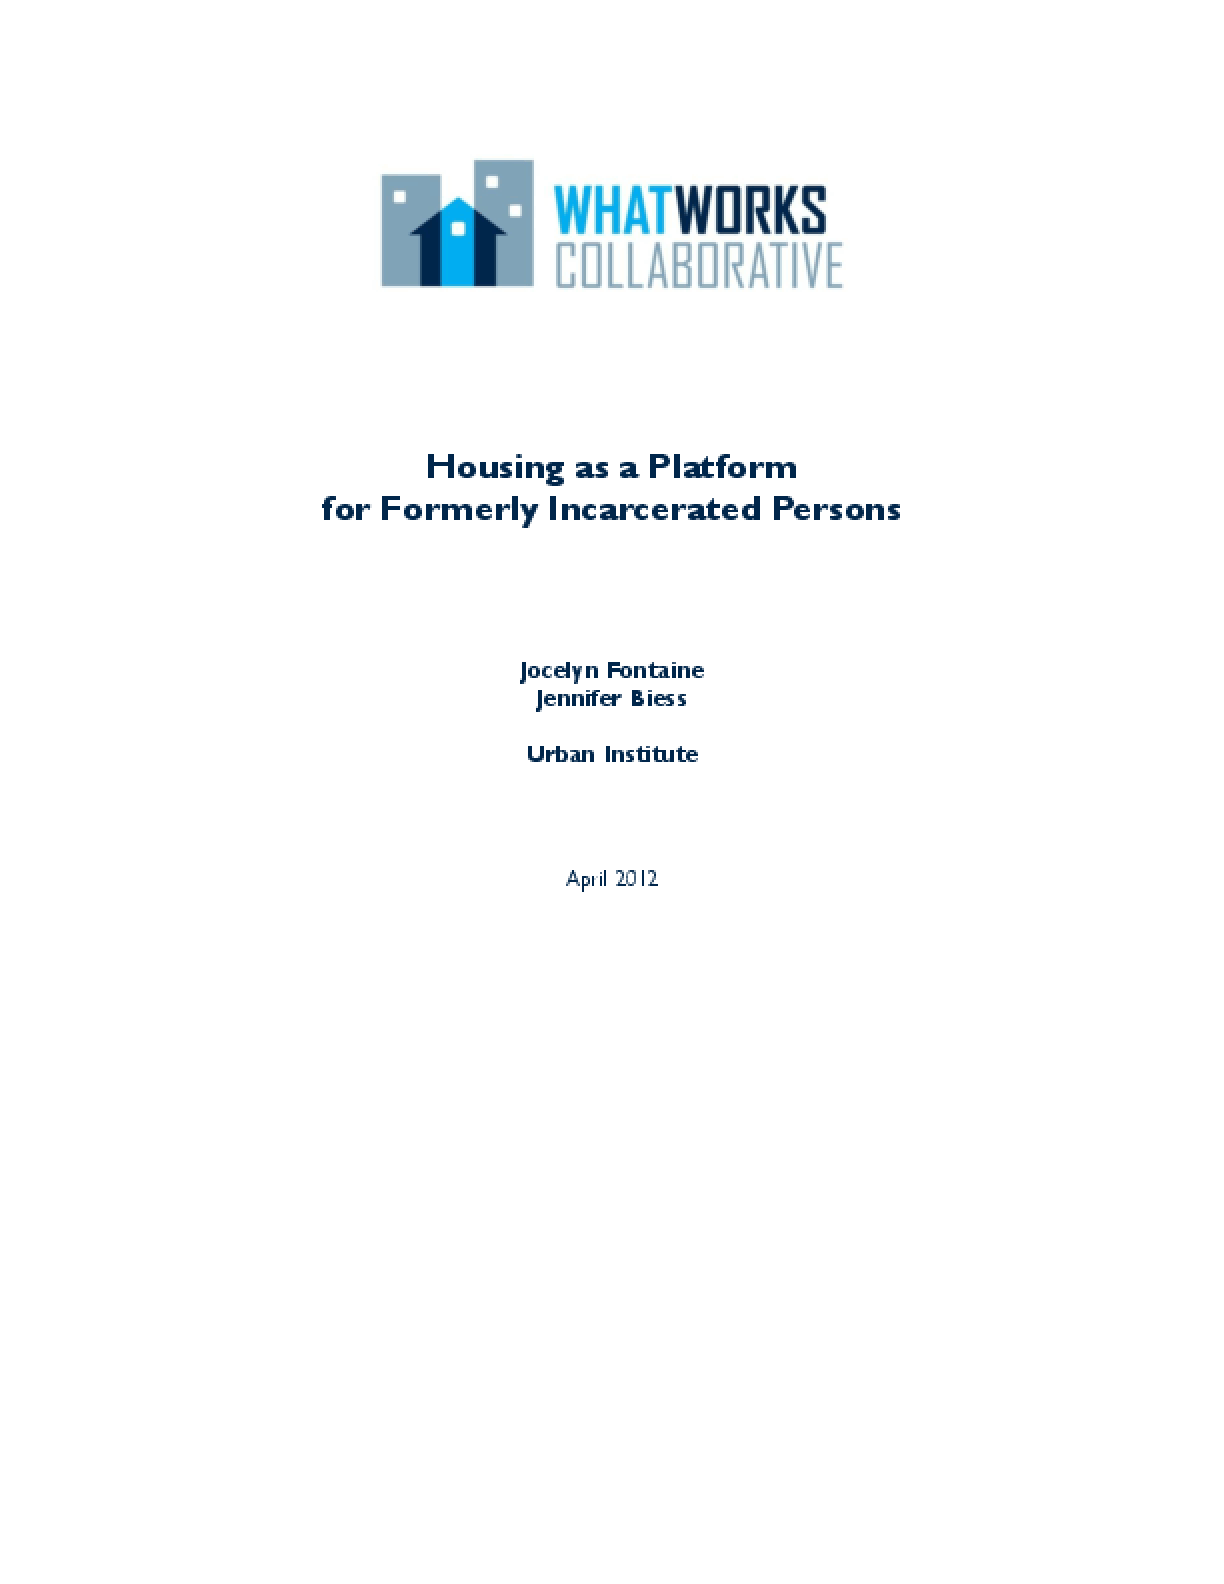 Housing as a Platform for Formerly Incarcerated Persons